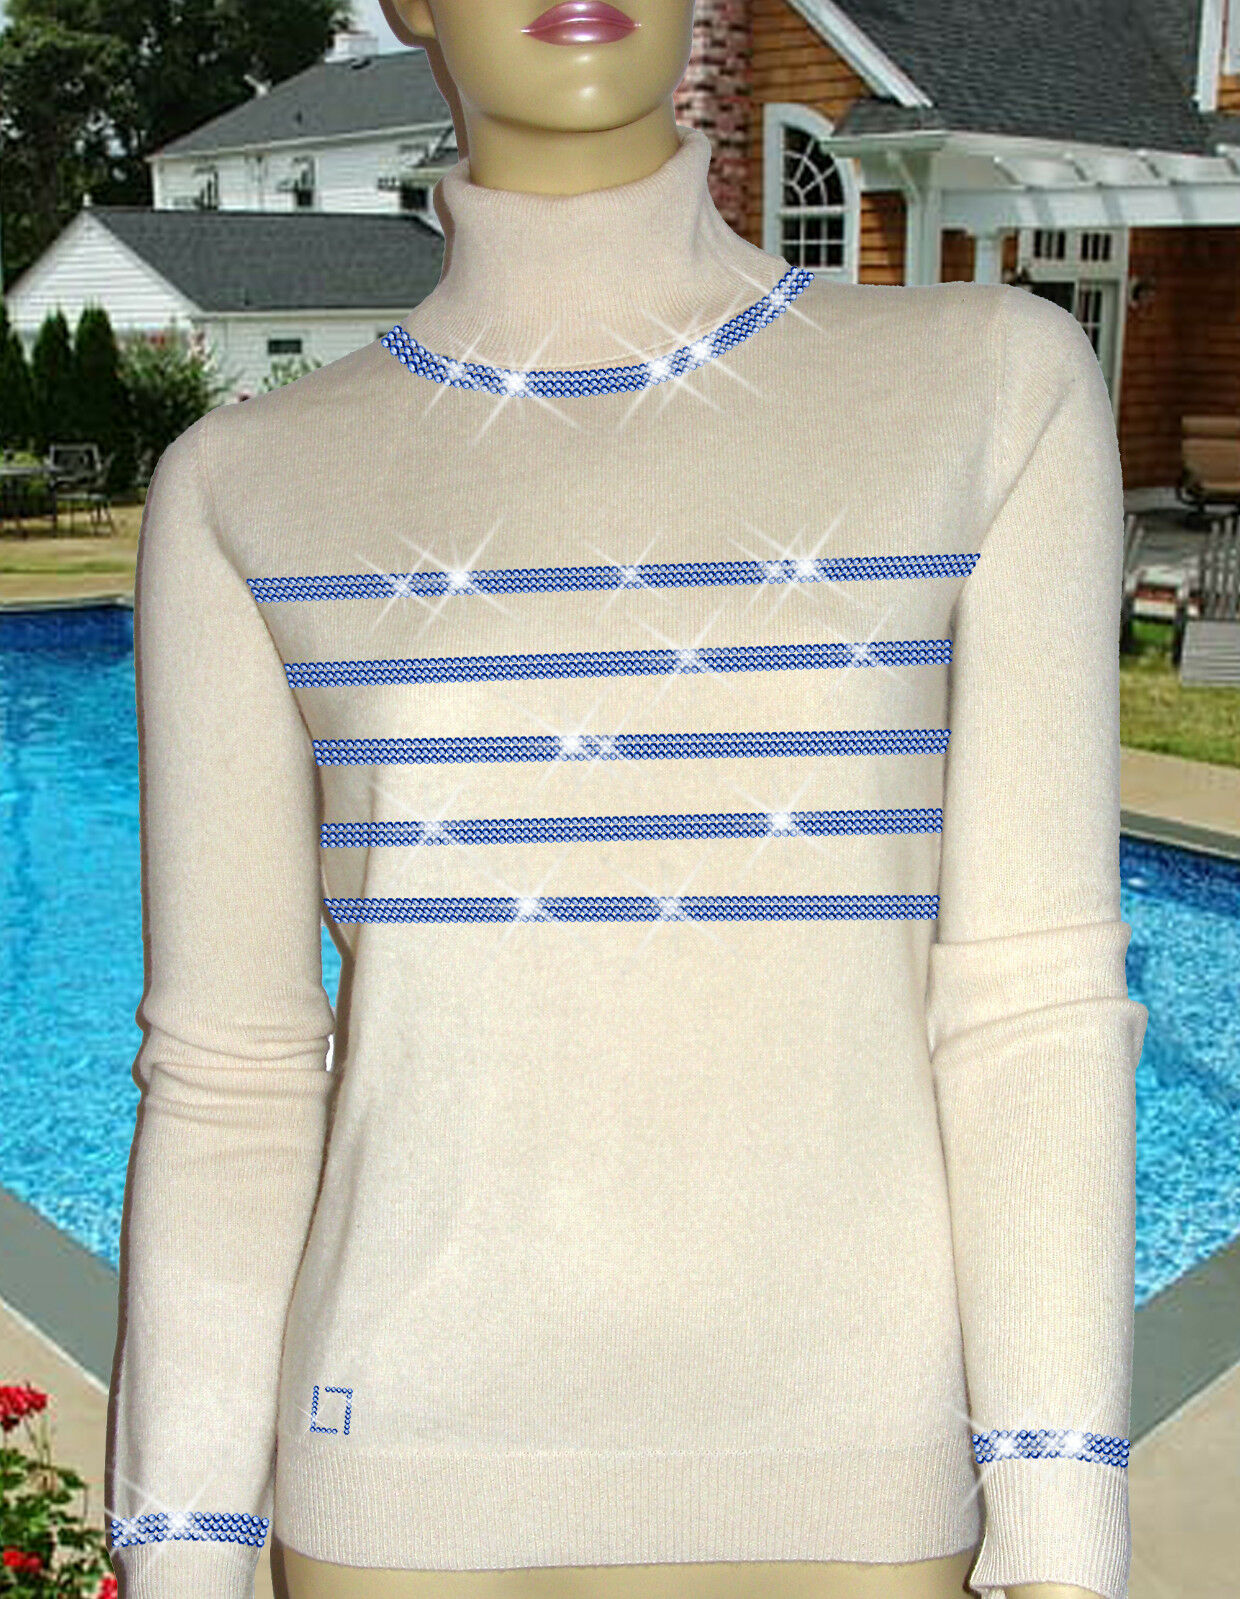 Luxe Oh Oh Luxe ` Dor 100% Cachemire Pull Hamptons Lifestyle Blanc Bleu Royal 50/52 XXL 4b4df5